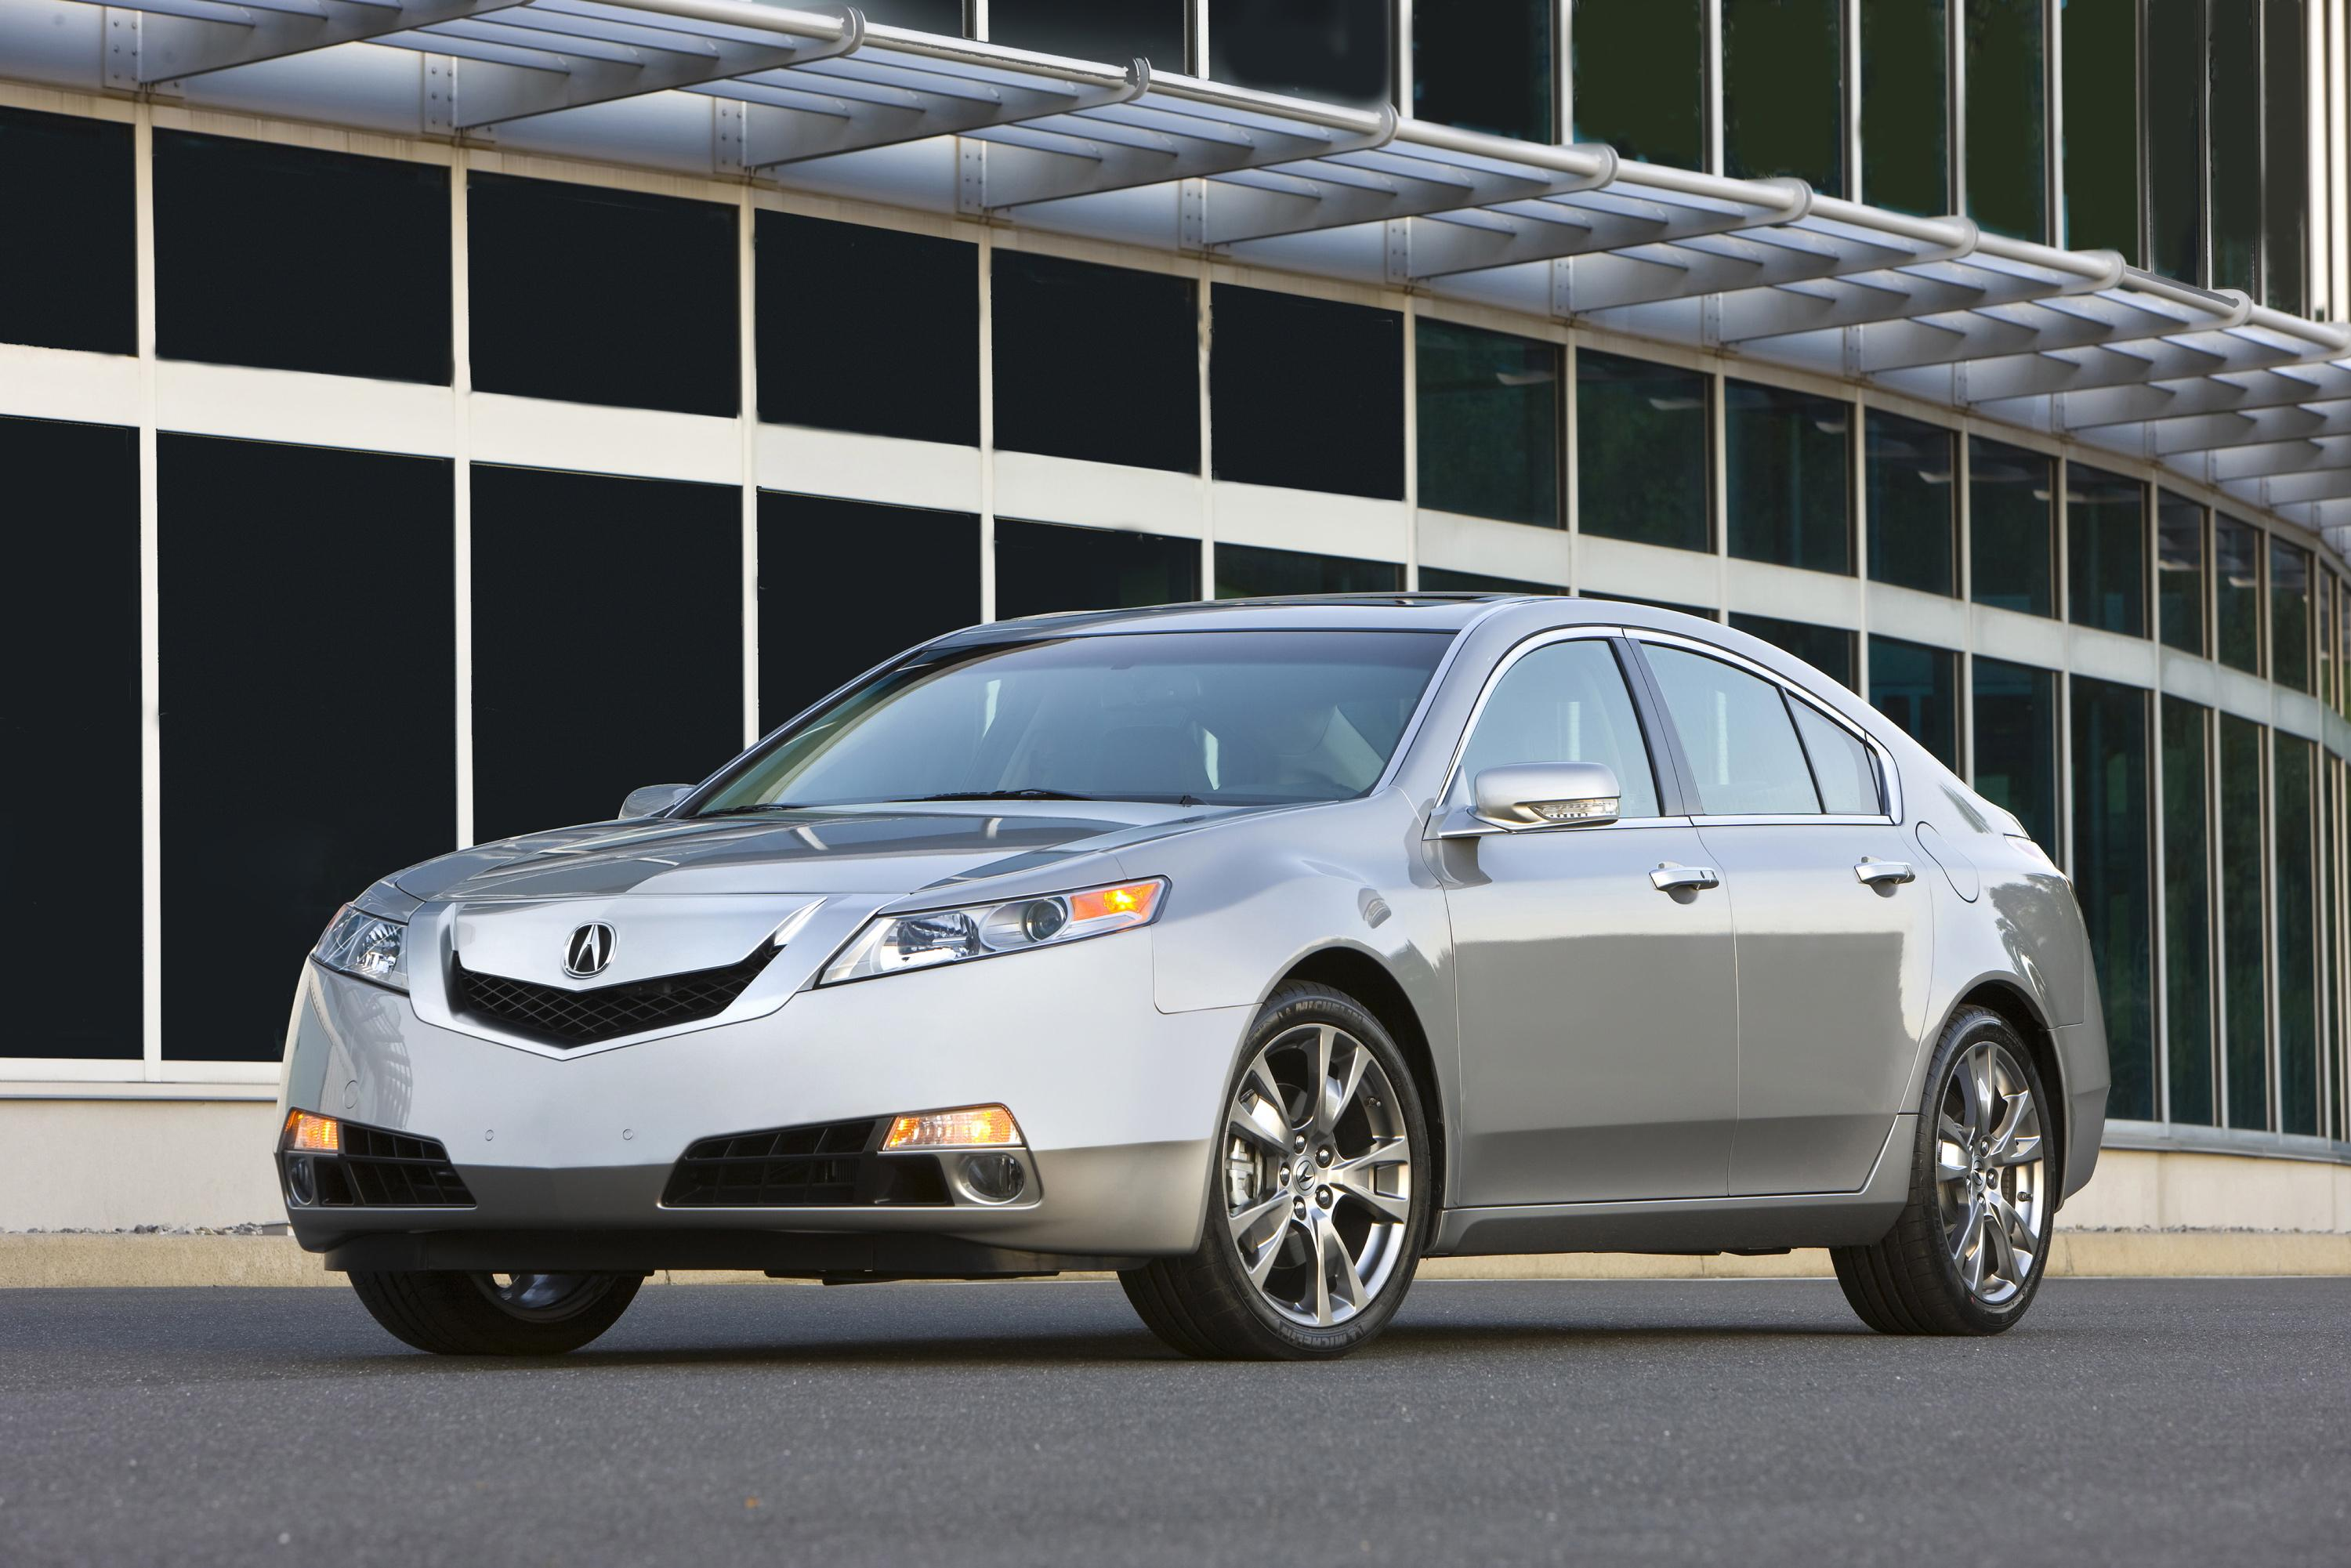 2010 Acura TL to Offer AllNew Manual Transmission